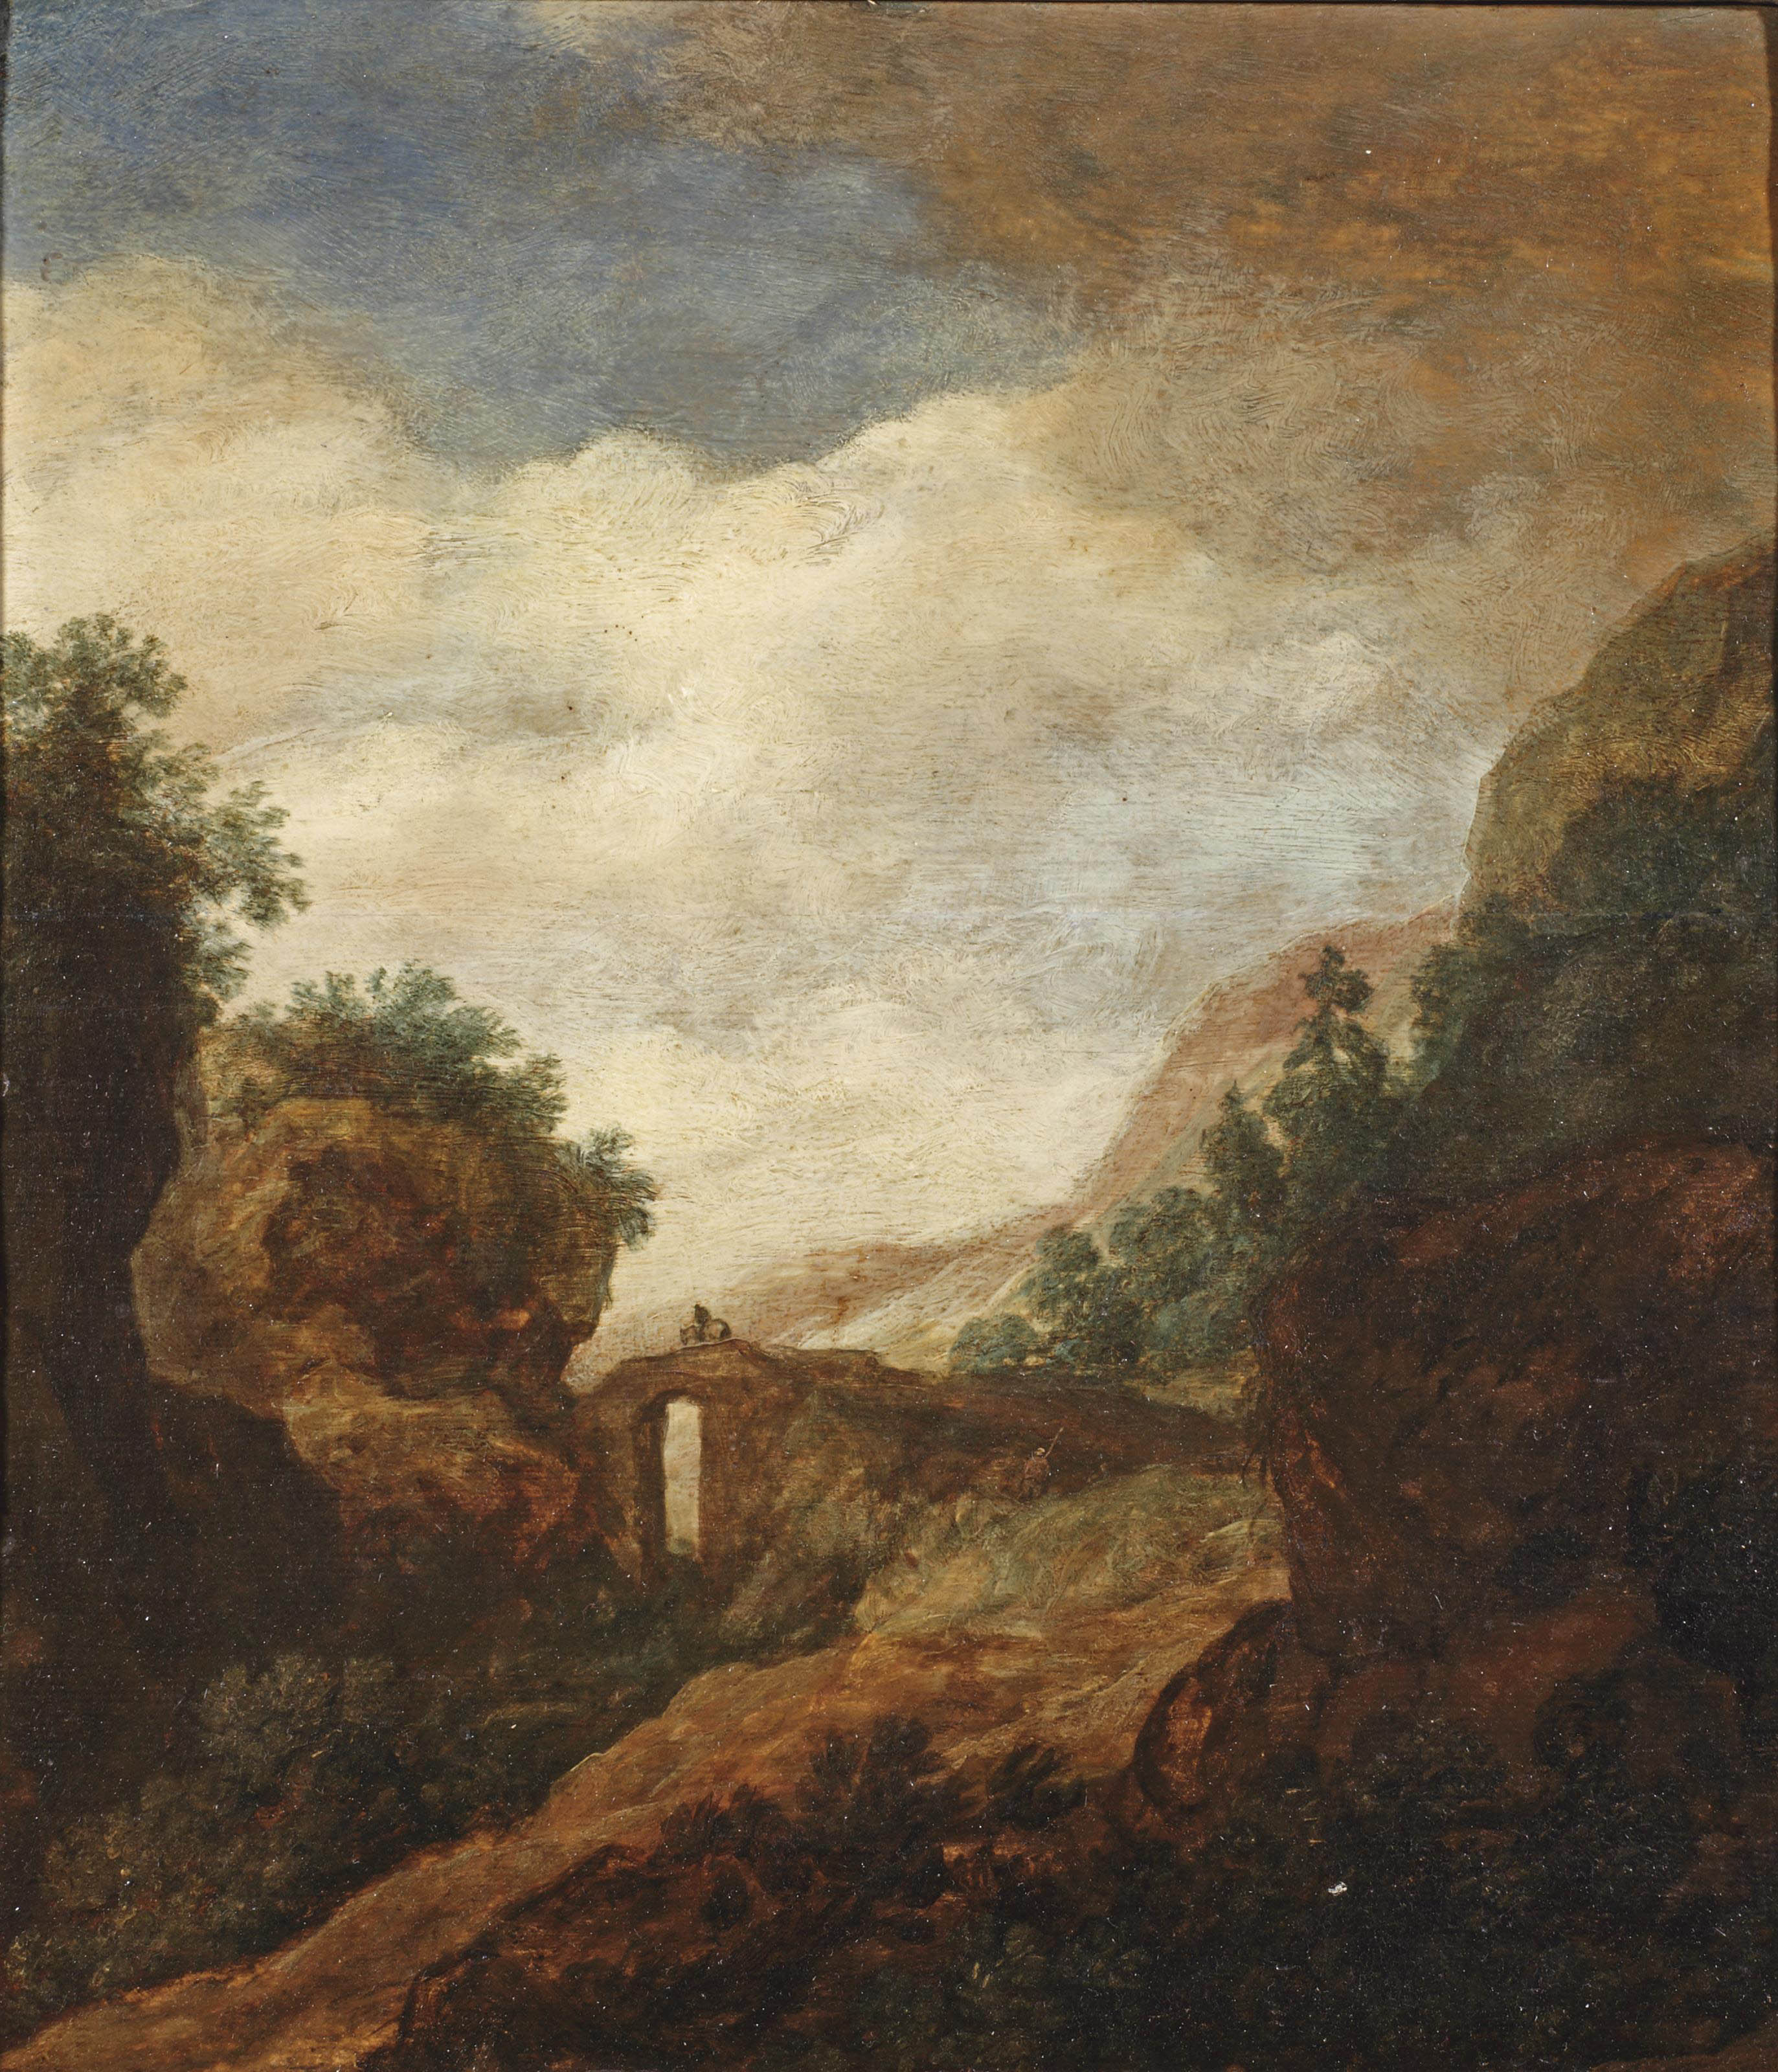 A landscape with a horse rider on a bridge